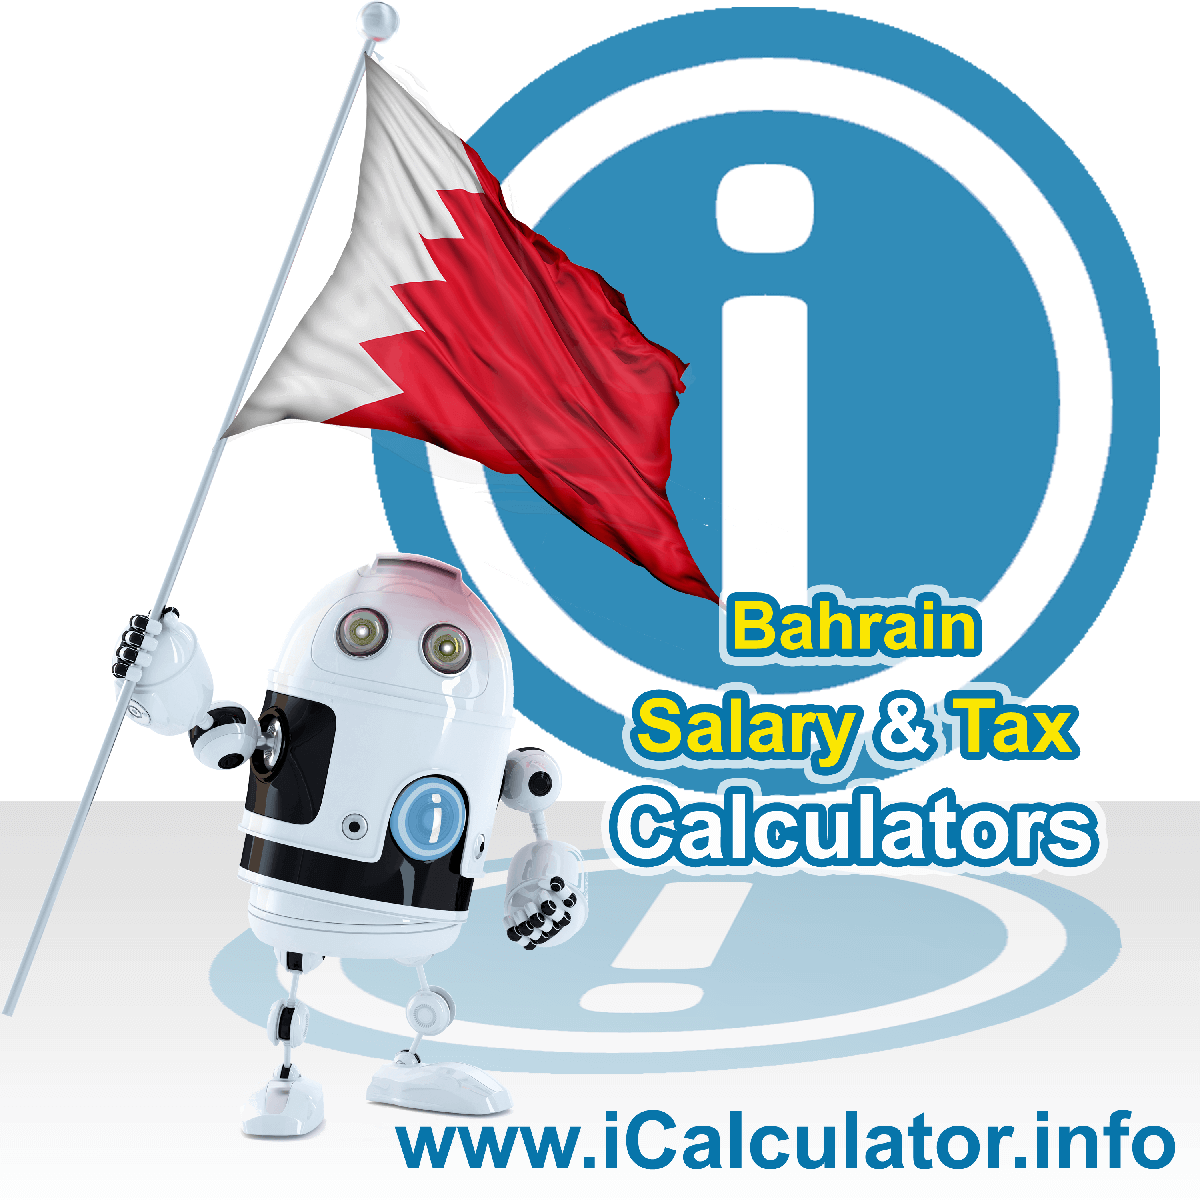 Bahrain Salary Calculator. This image shows the Bahrainese flag and information relating to the tax formula for the Bahrain Tax Calculator